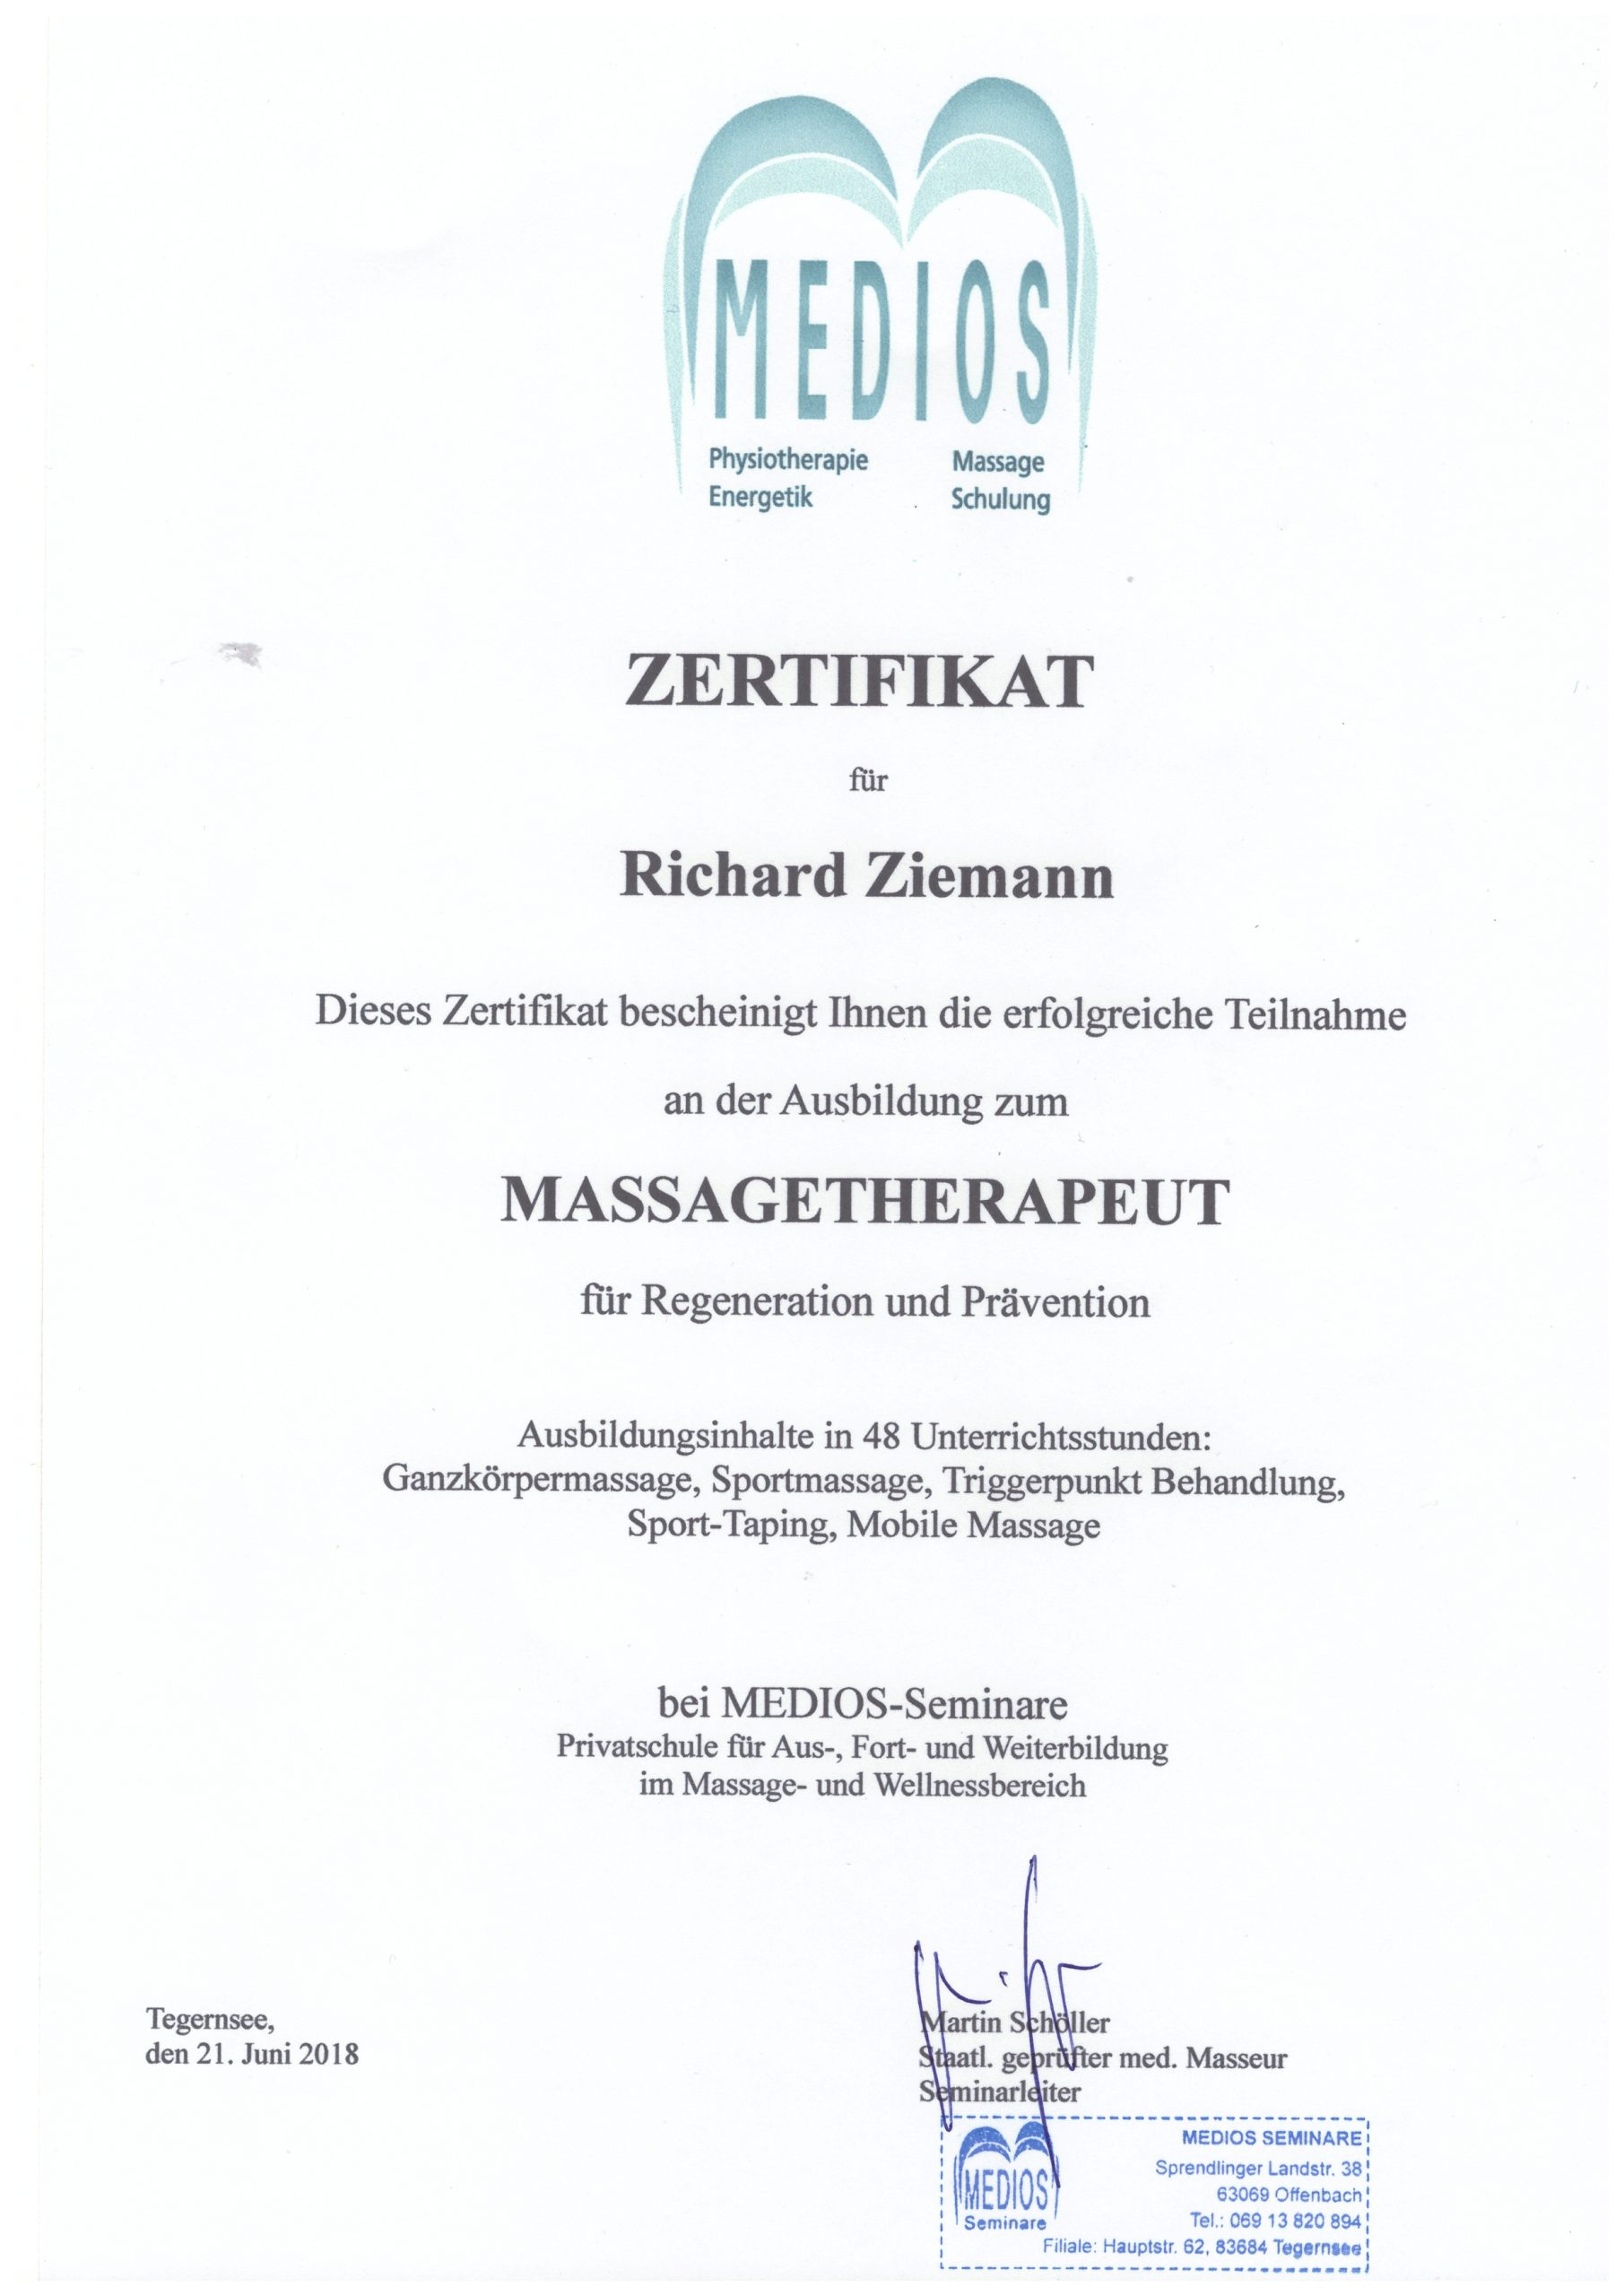 Richard Ziemann - Zertifikat Massagetherapeut